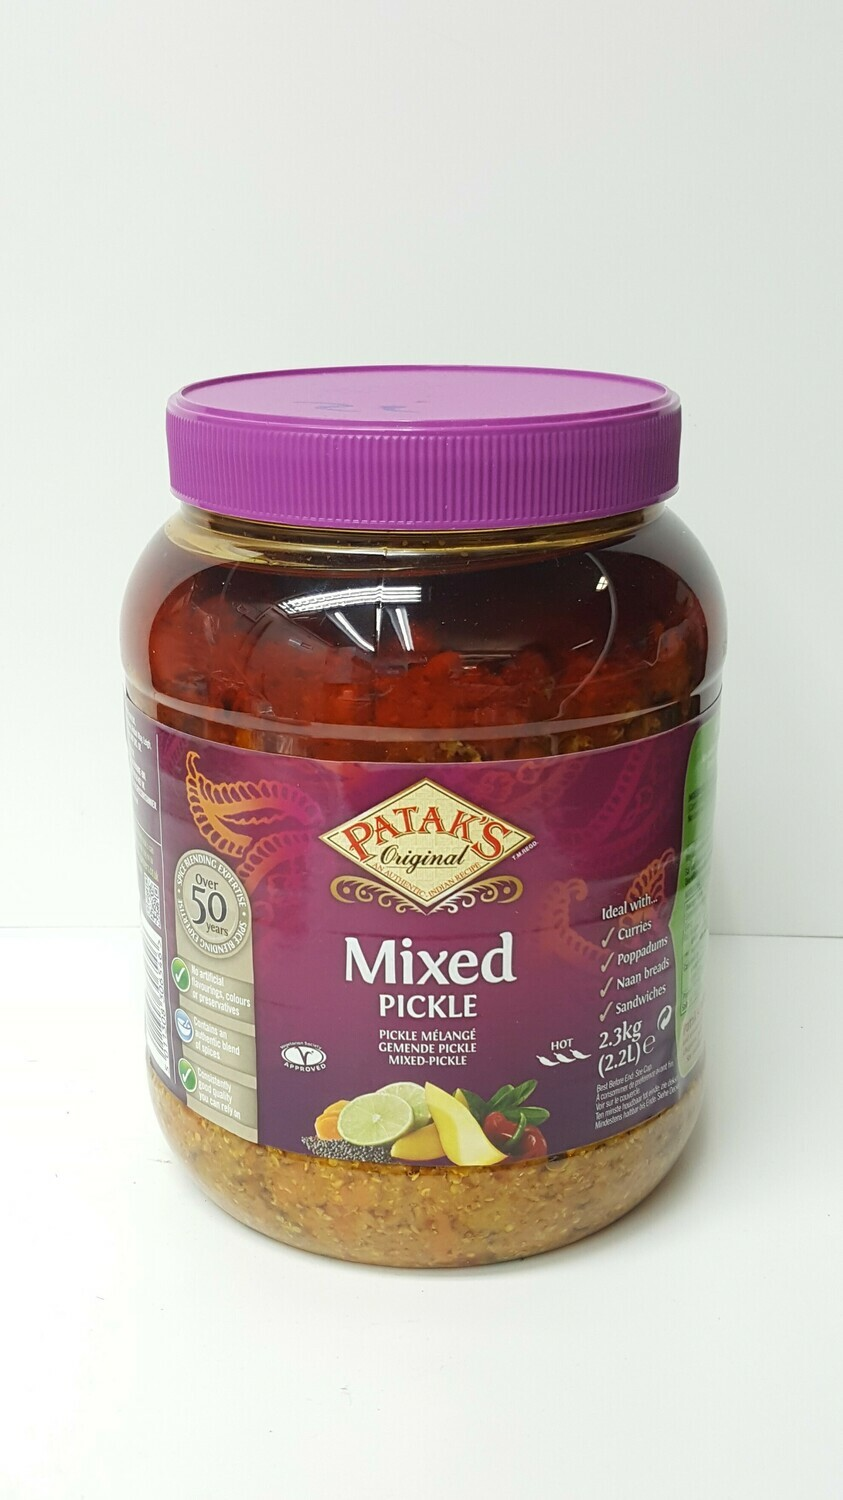 Mixed Pickle PATAKS 2.3 Kg